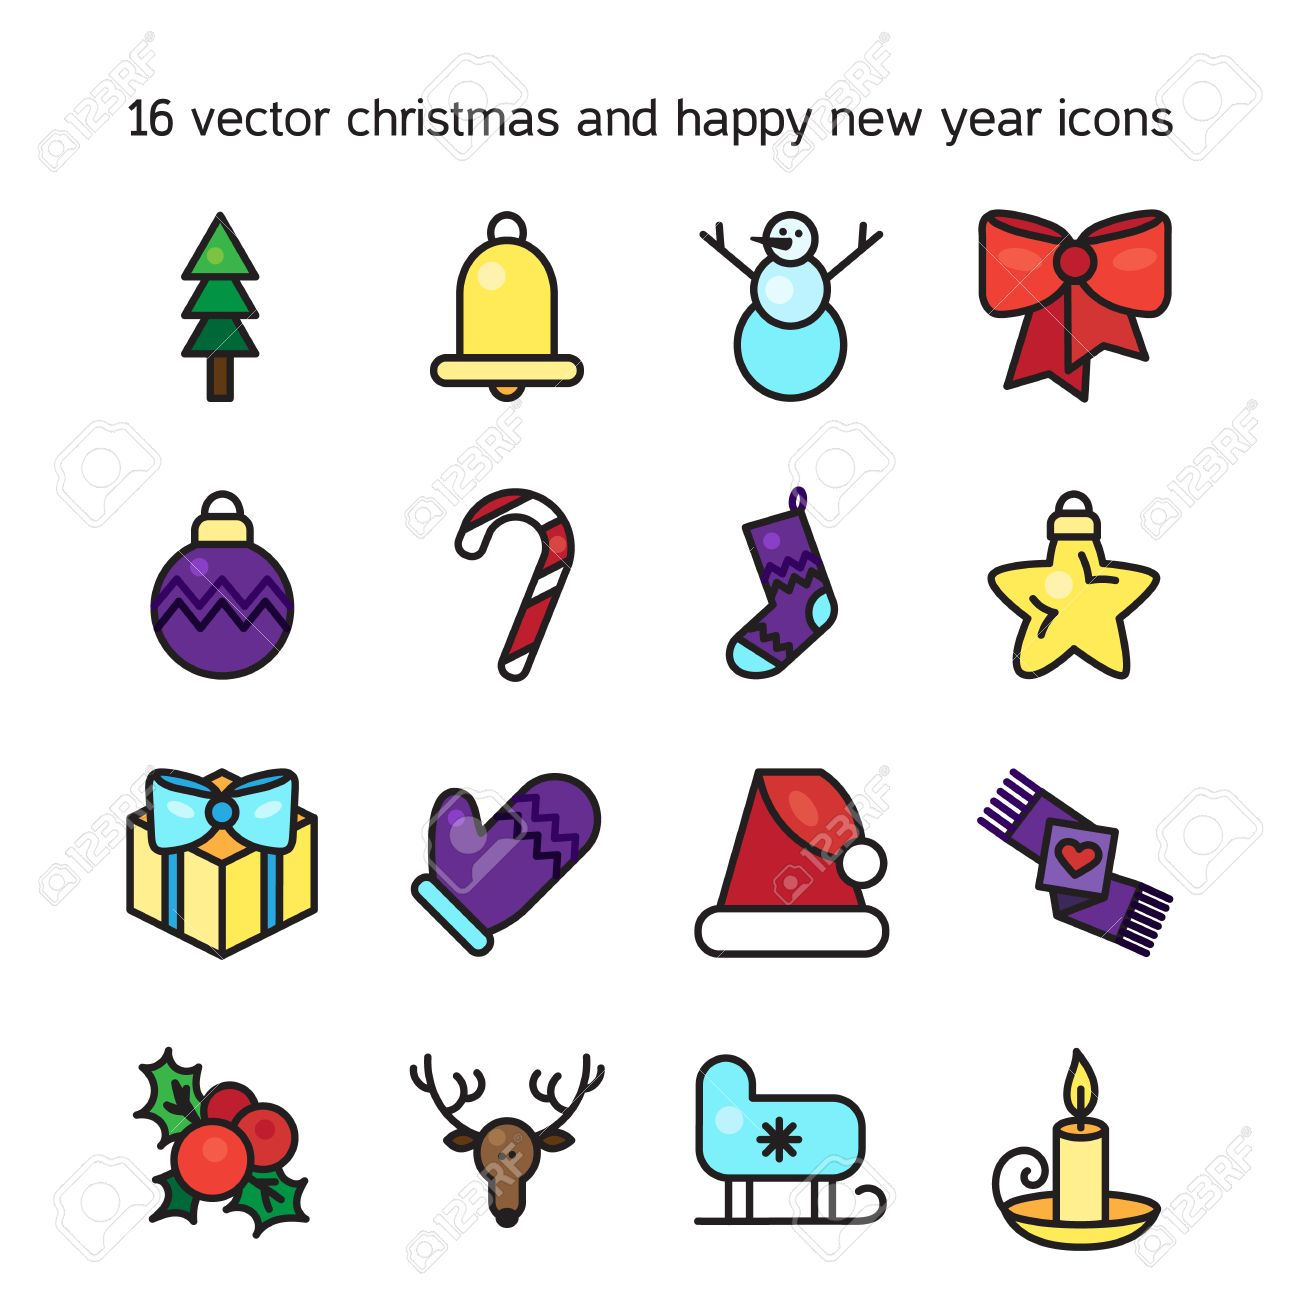 New Year Symbols Gallery Meaning Of Text Symbols